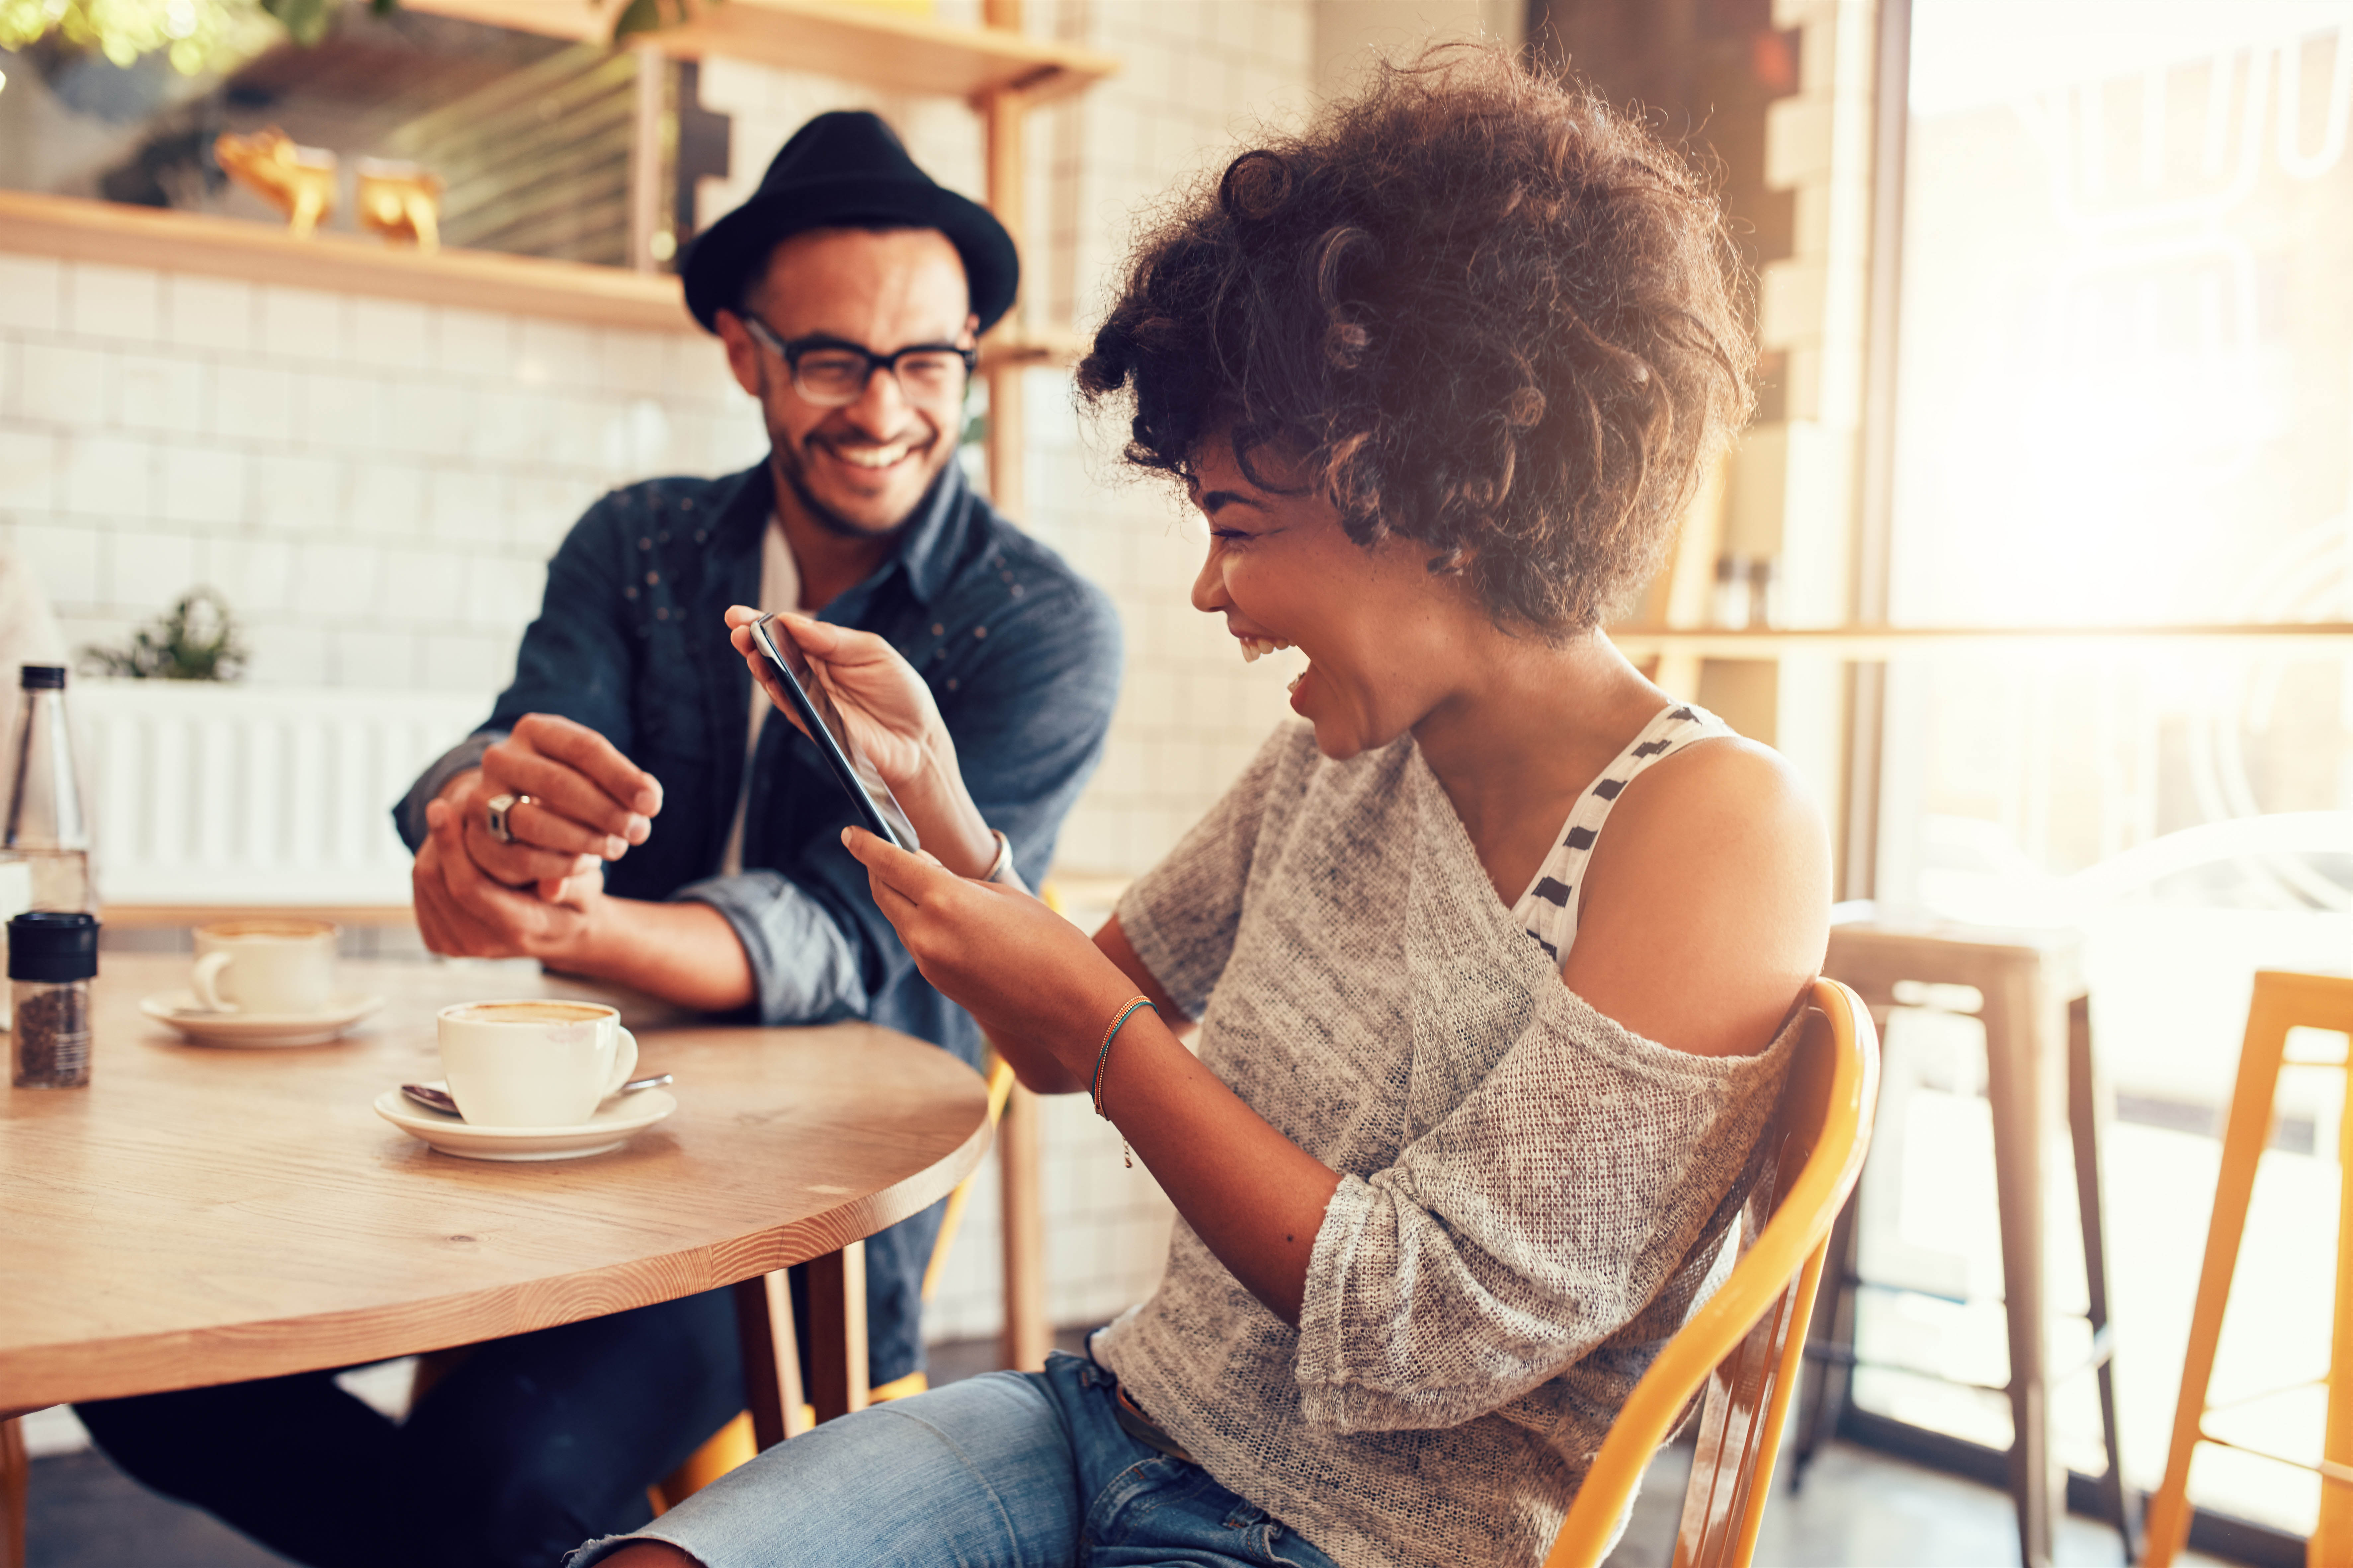 Stock photo of a man and woman drinking coffee at a table and and looking at and laughing at her cell phone